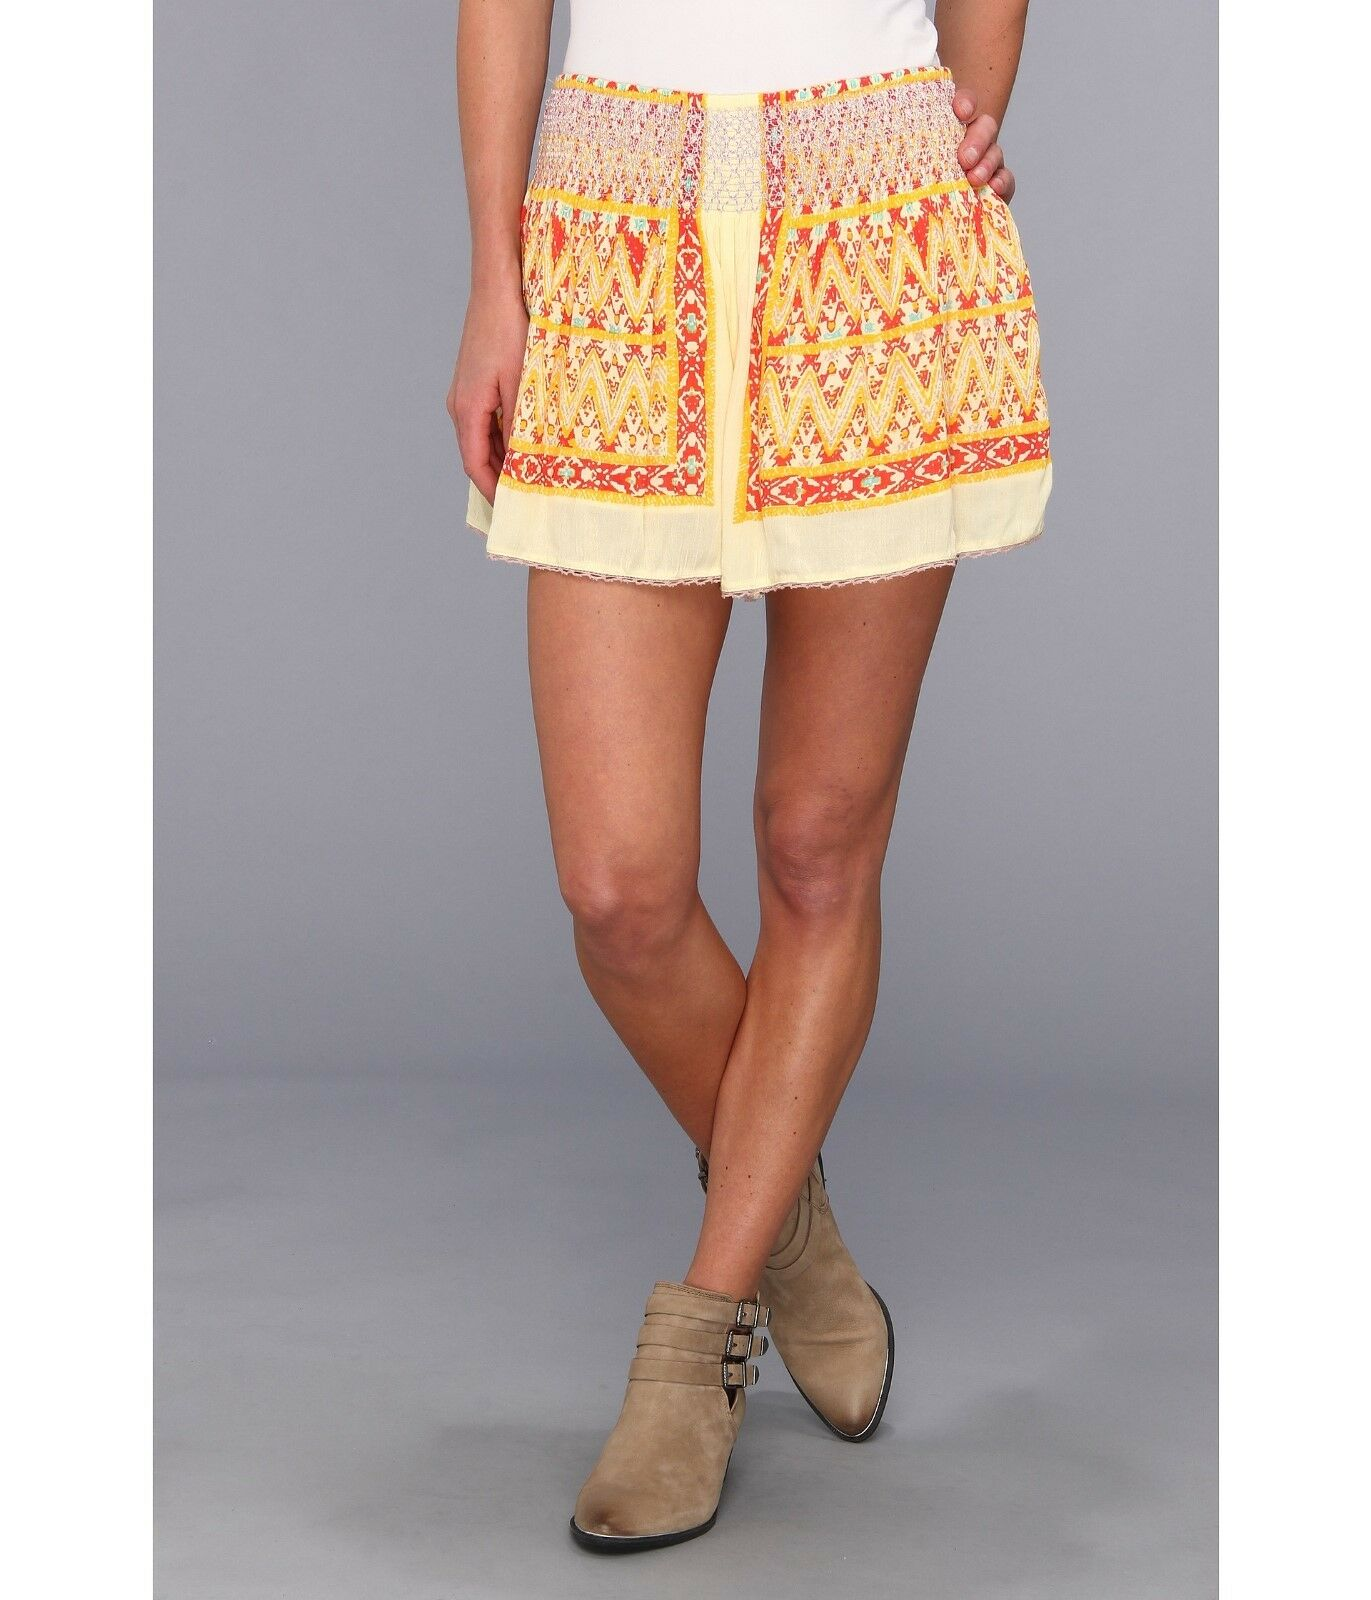 NEW✿ Free People S SHORTS SKIRT NWT  Retail Between Borders Ivory